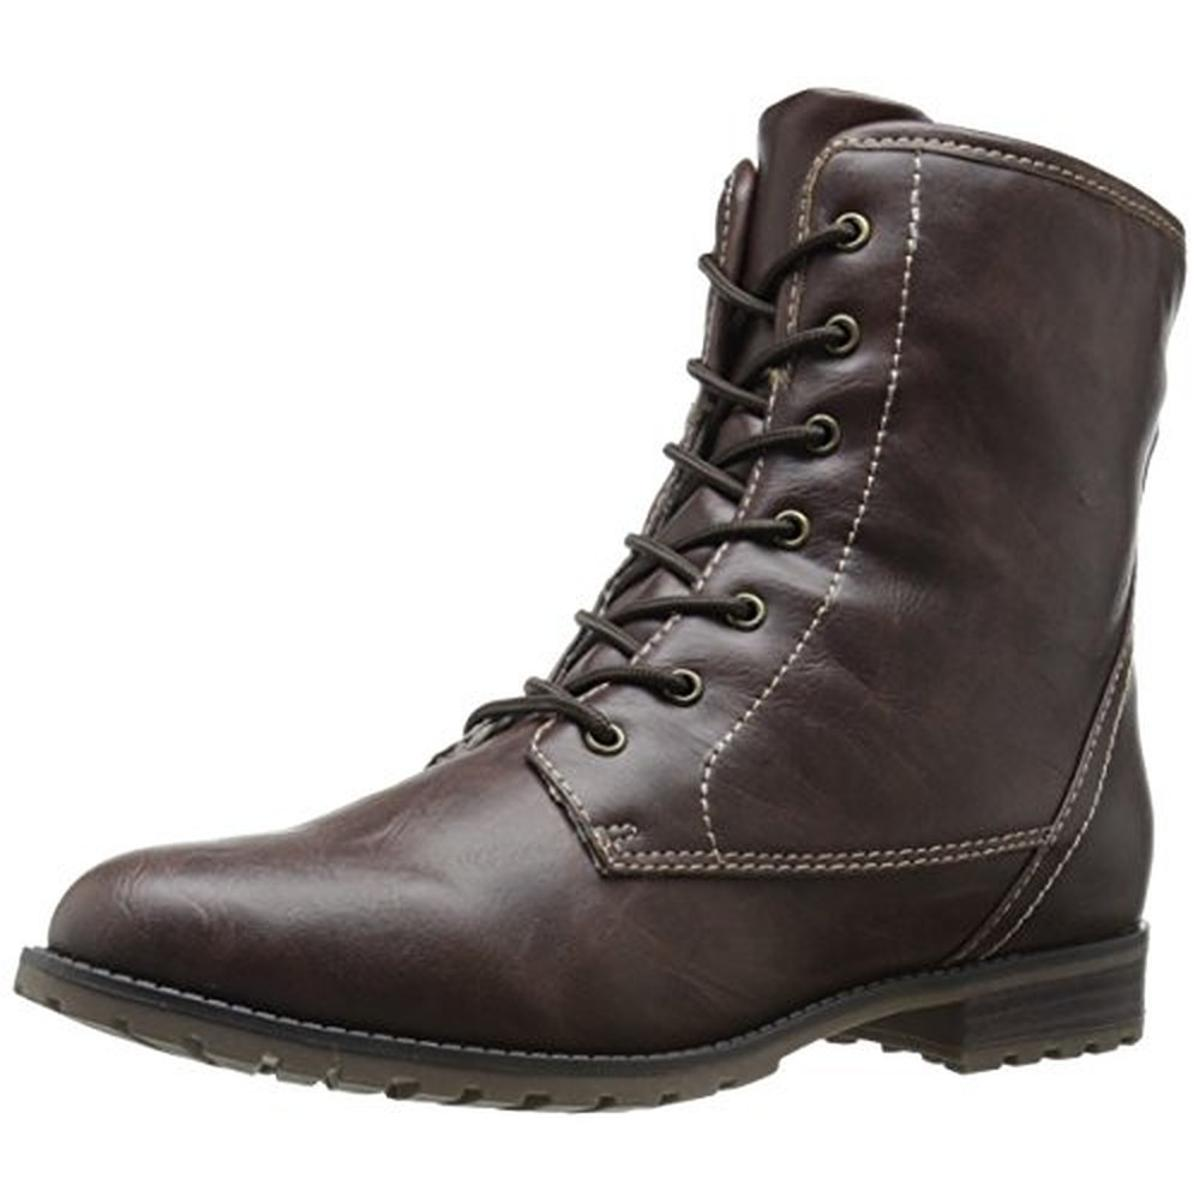 sporto 4517 womens brown ankle winter boots shoes 8